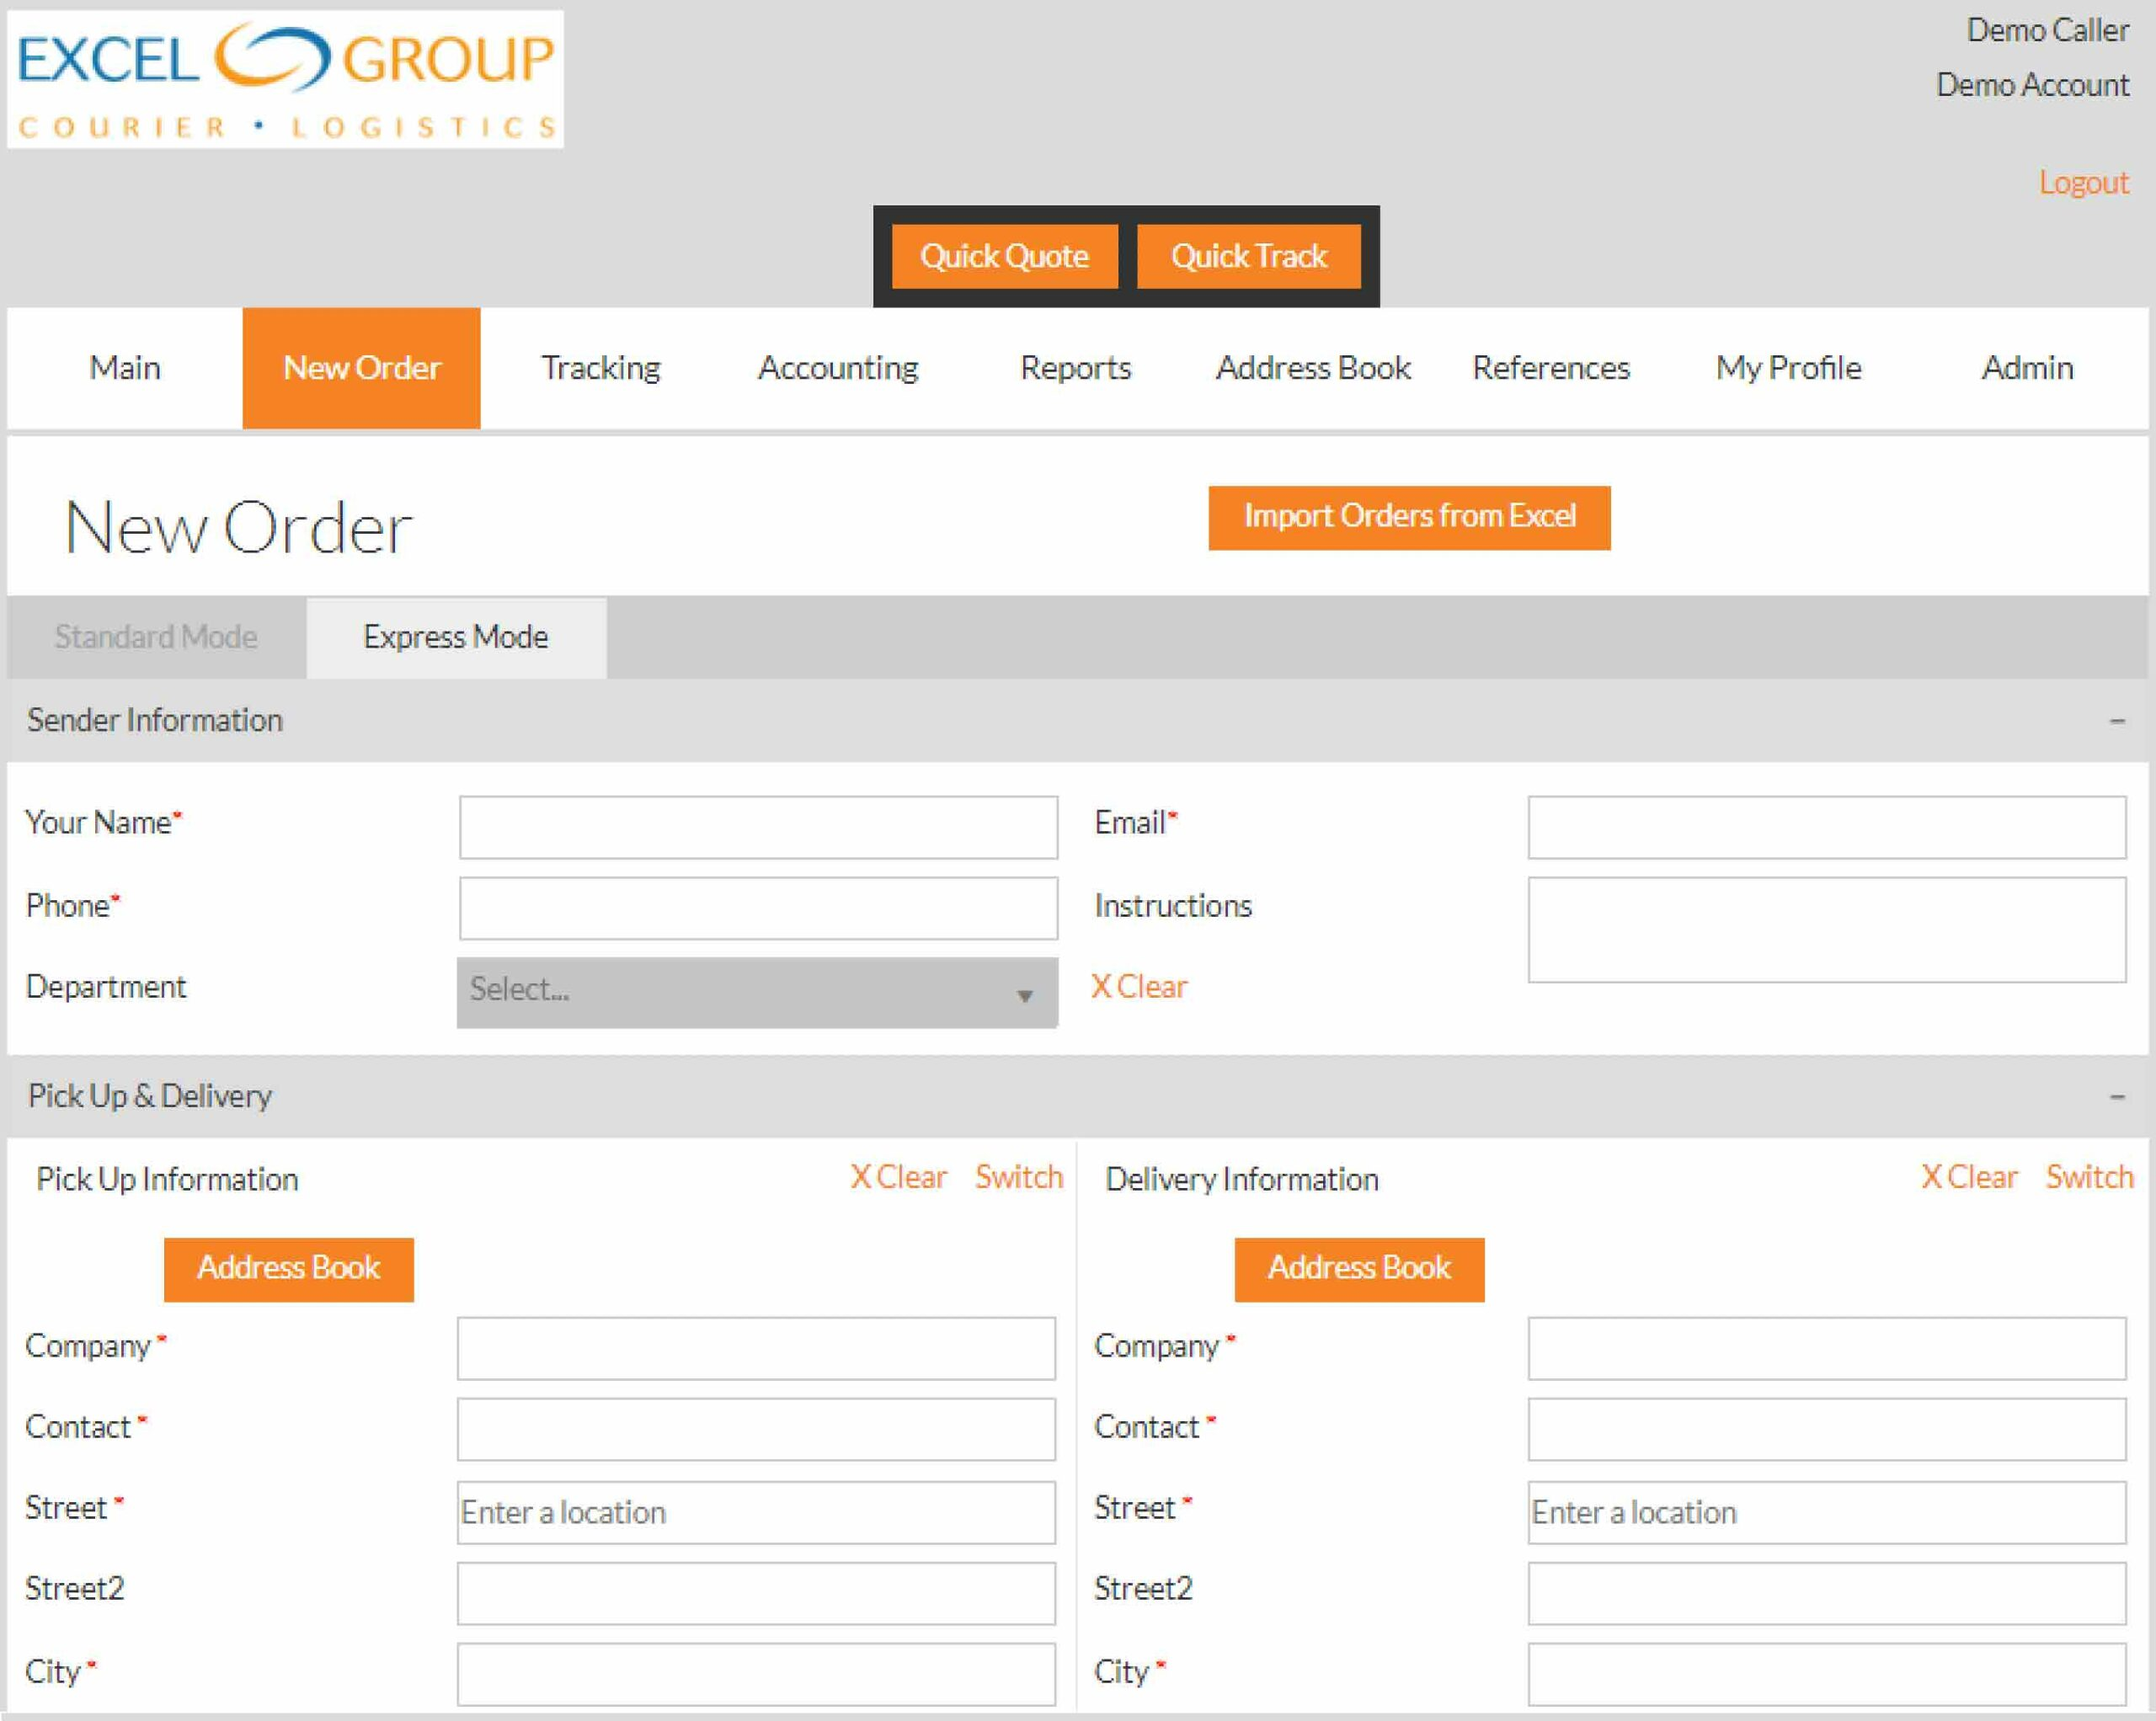 Excel Courier Web Portal Scaled